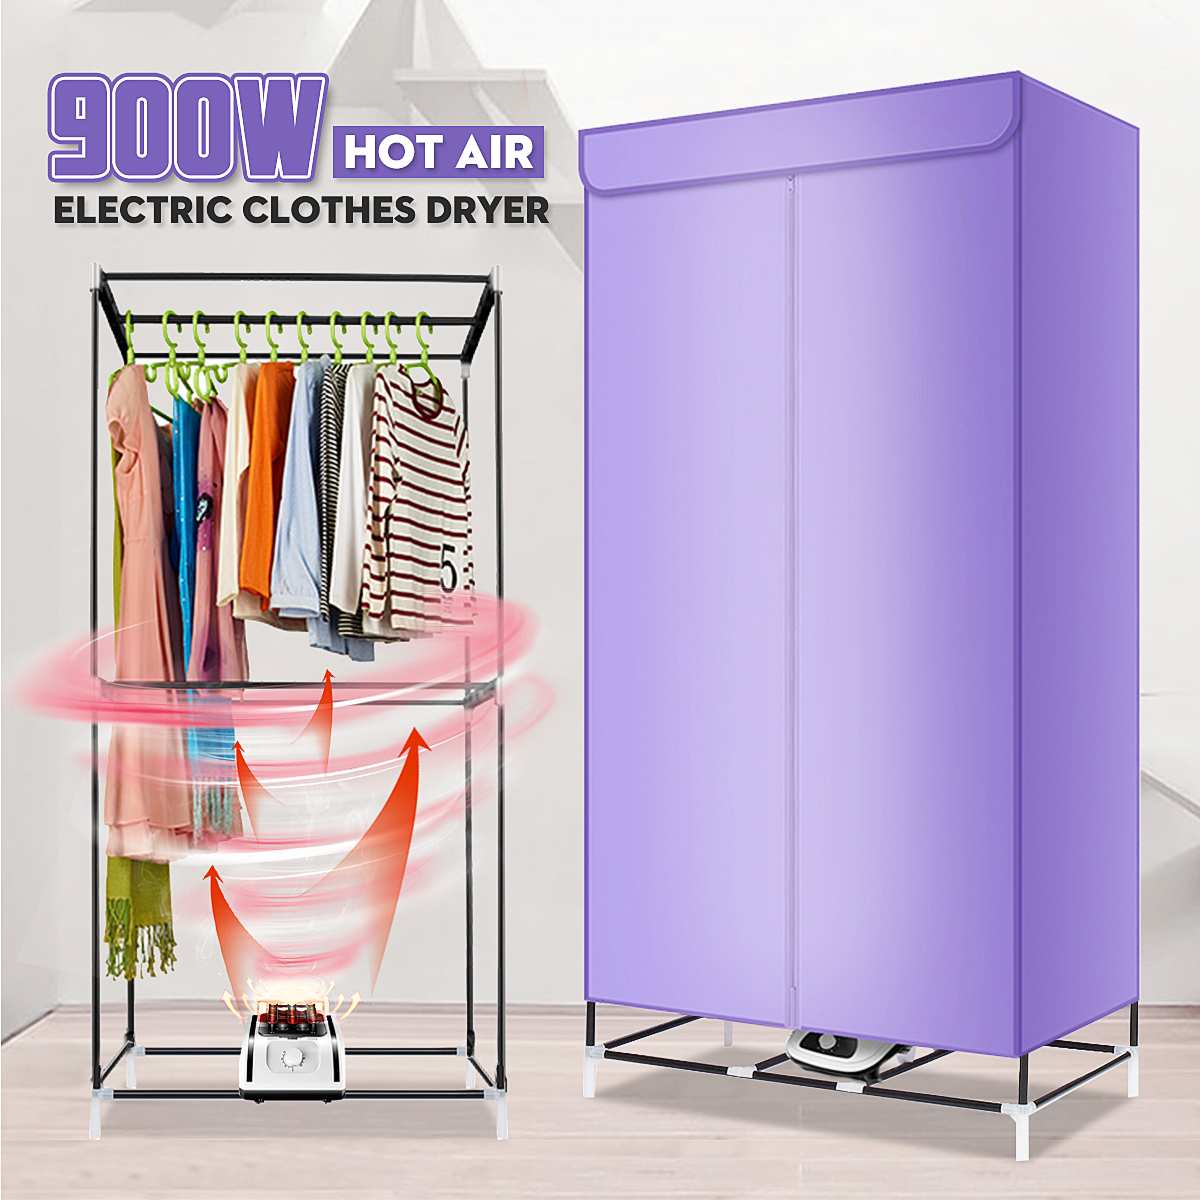 900/1000W 220V Electric Cloth Dryer Household Portable Baby Cloth Shoes Boots Dryer Power Motor Drying Warm WWnd Laundry Garment